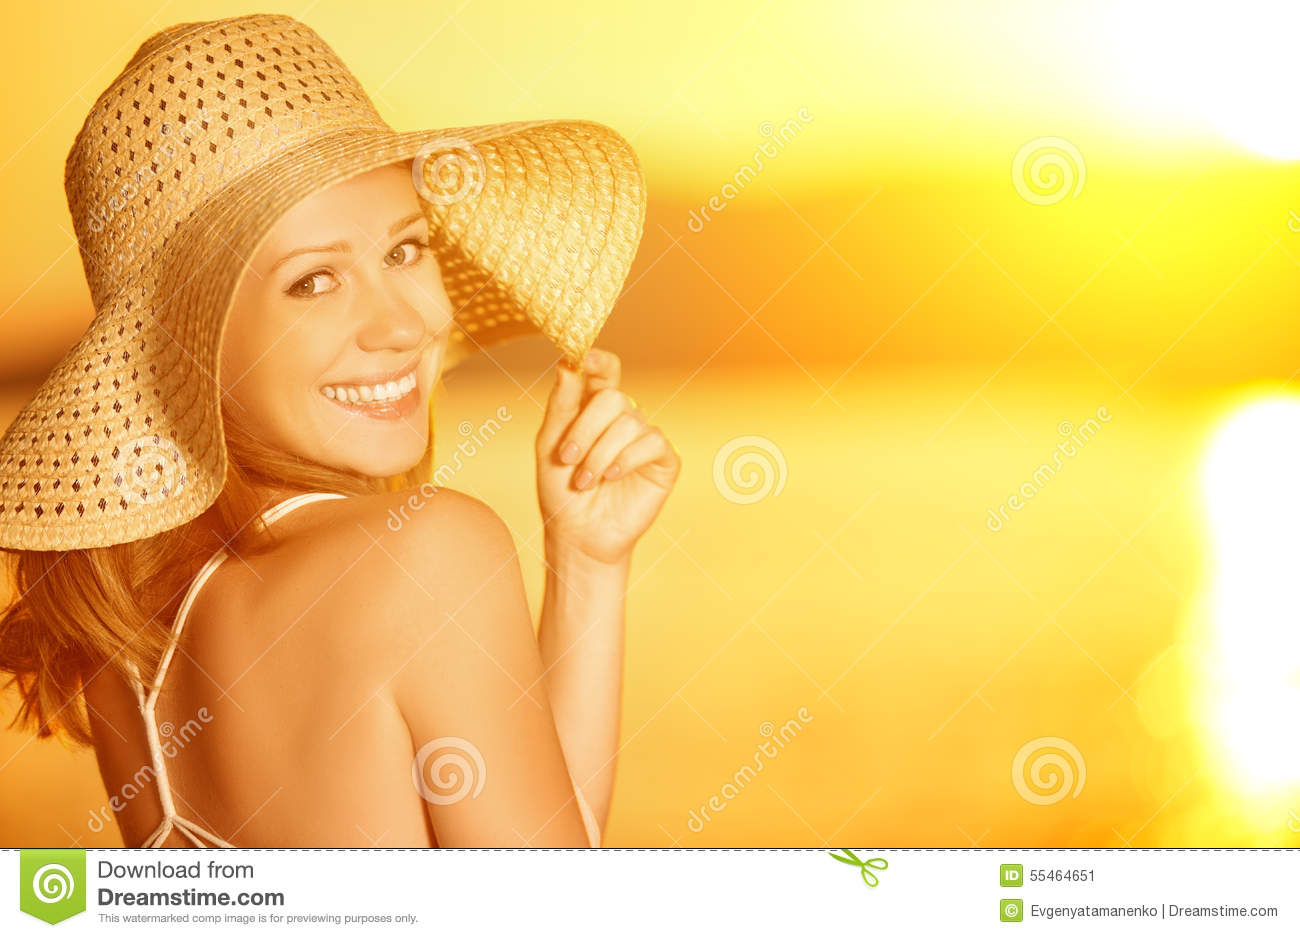 Download Beauty Happy Smiling Woman In Hat At Sea At Sunset On Beach Stock Image - Image of lifestyle, orange: 55464651